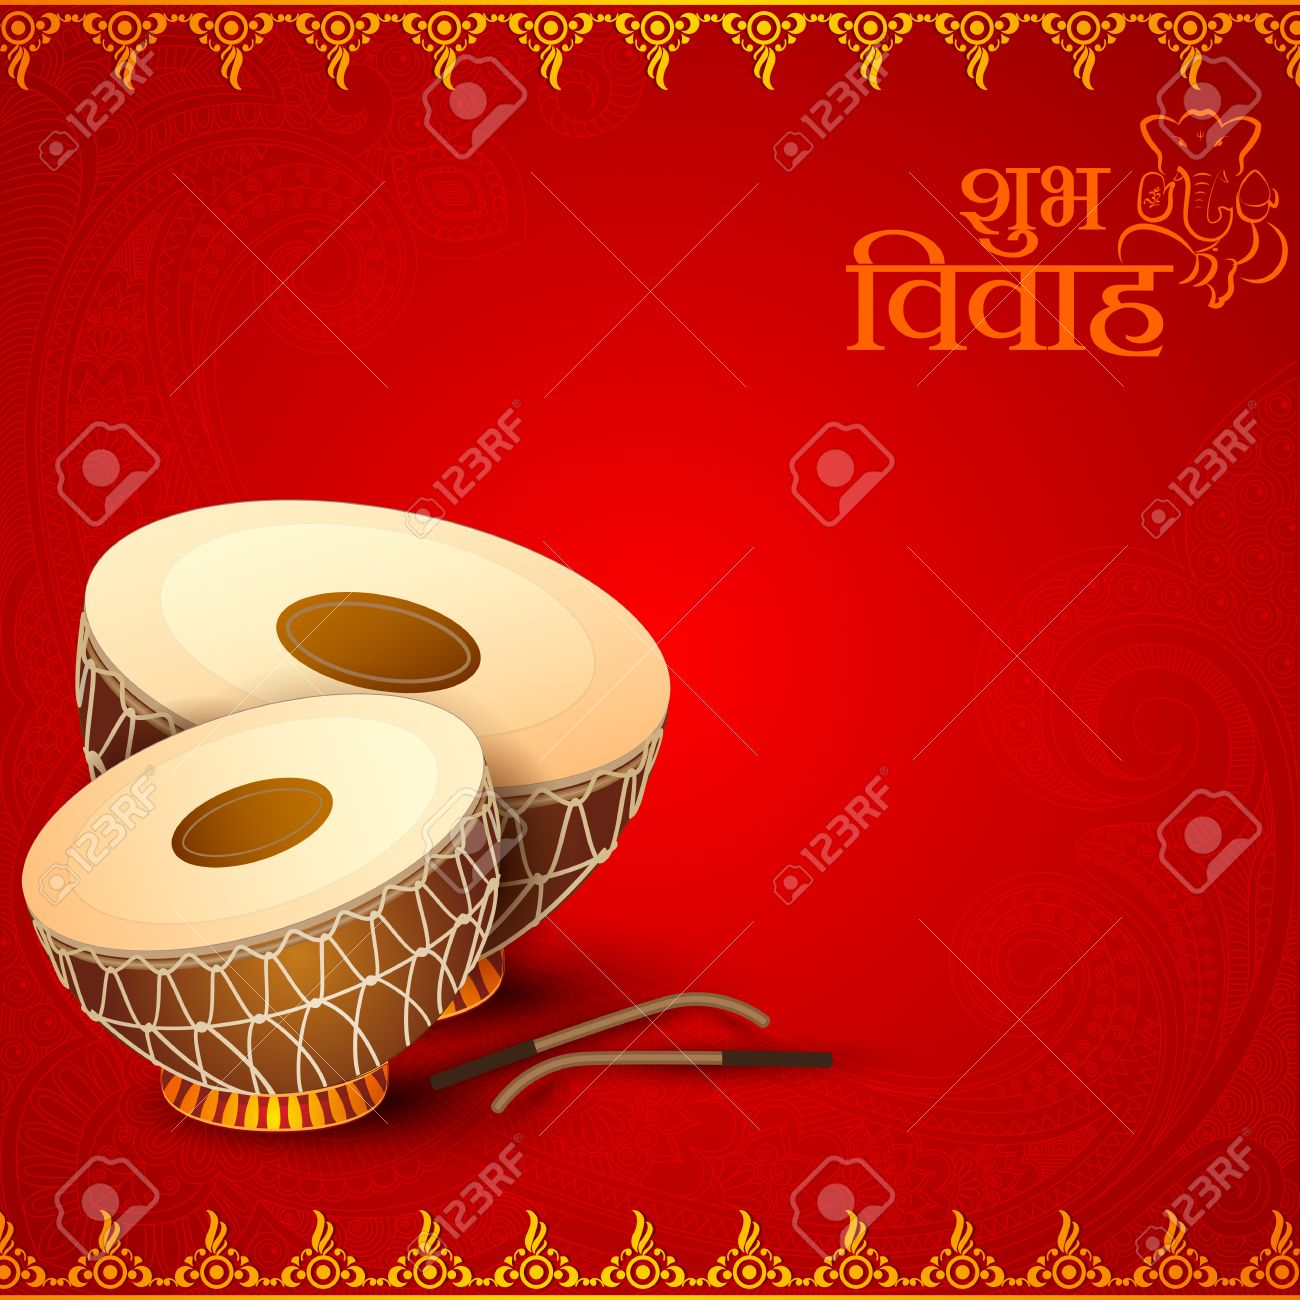 Vector Illustration Of Drum In Indian Wedding Invitation Card Stock